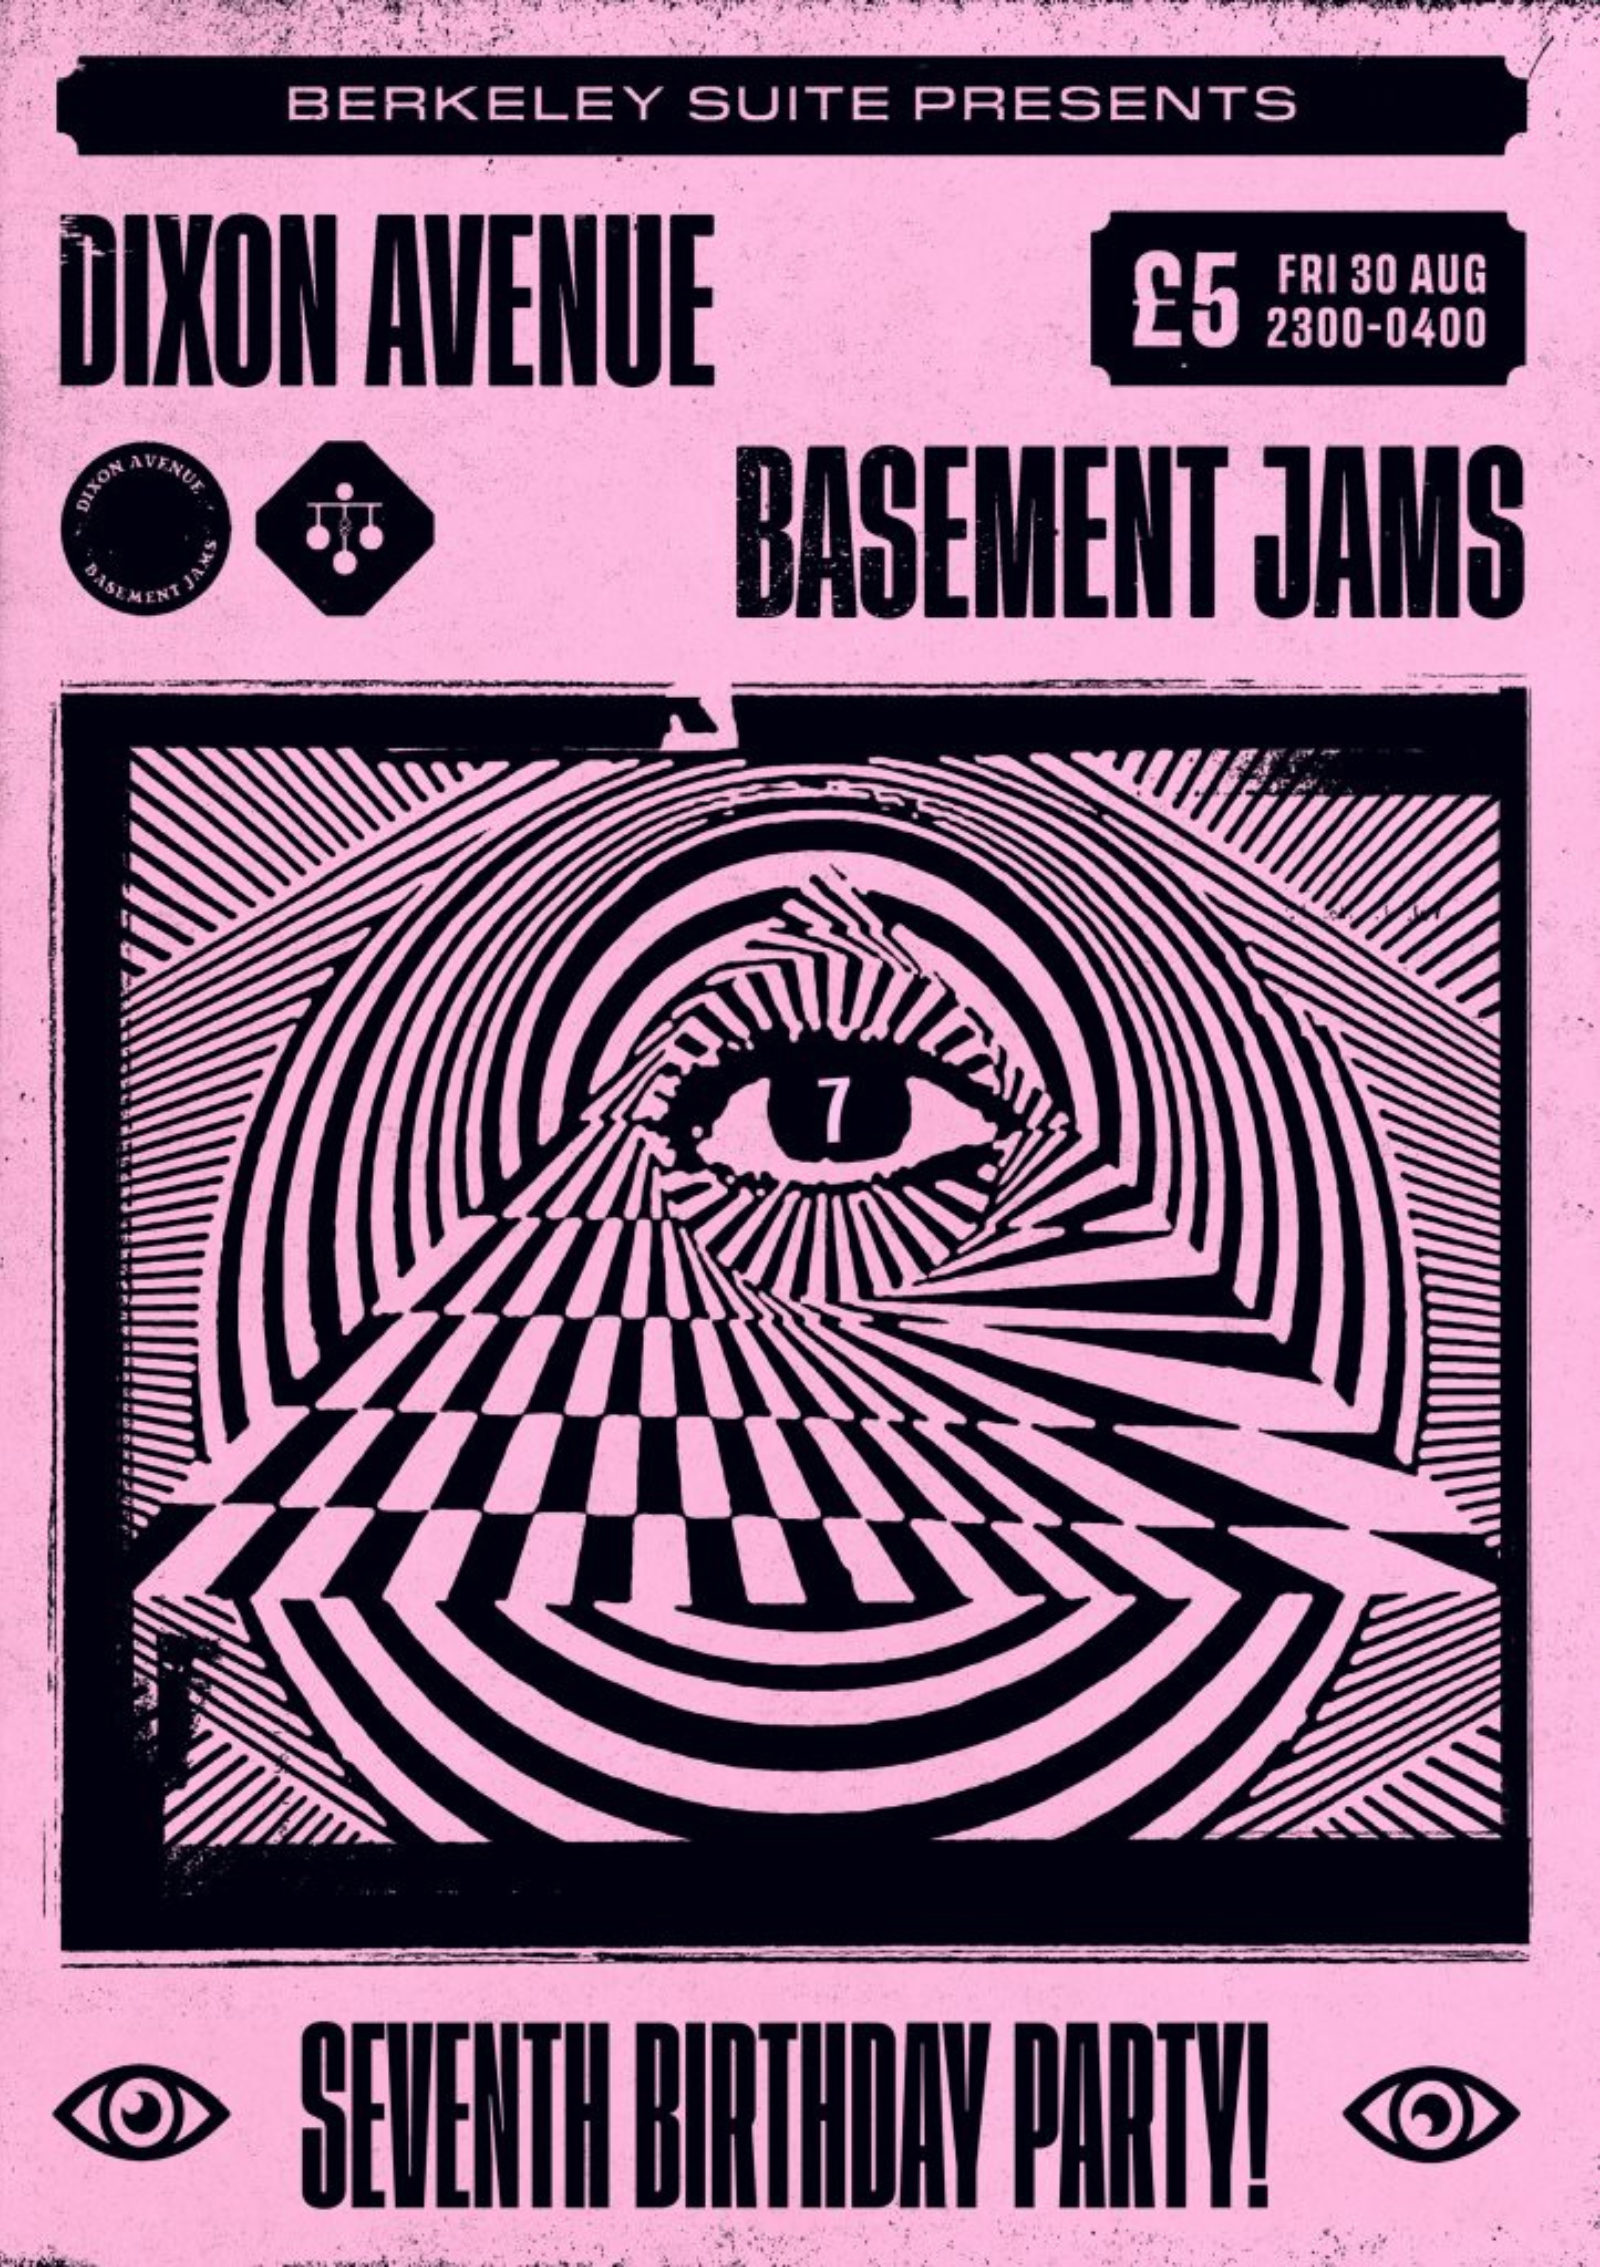 Dixon Avenue Basement Jams - 7th Birthday!